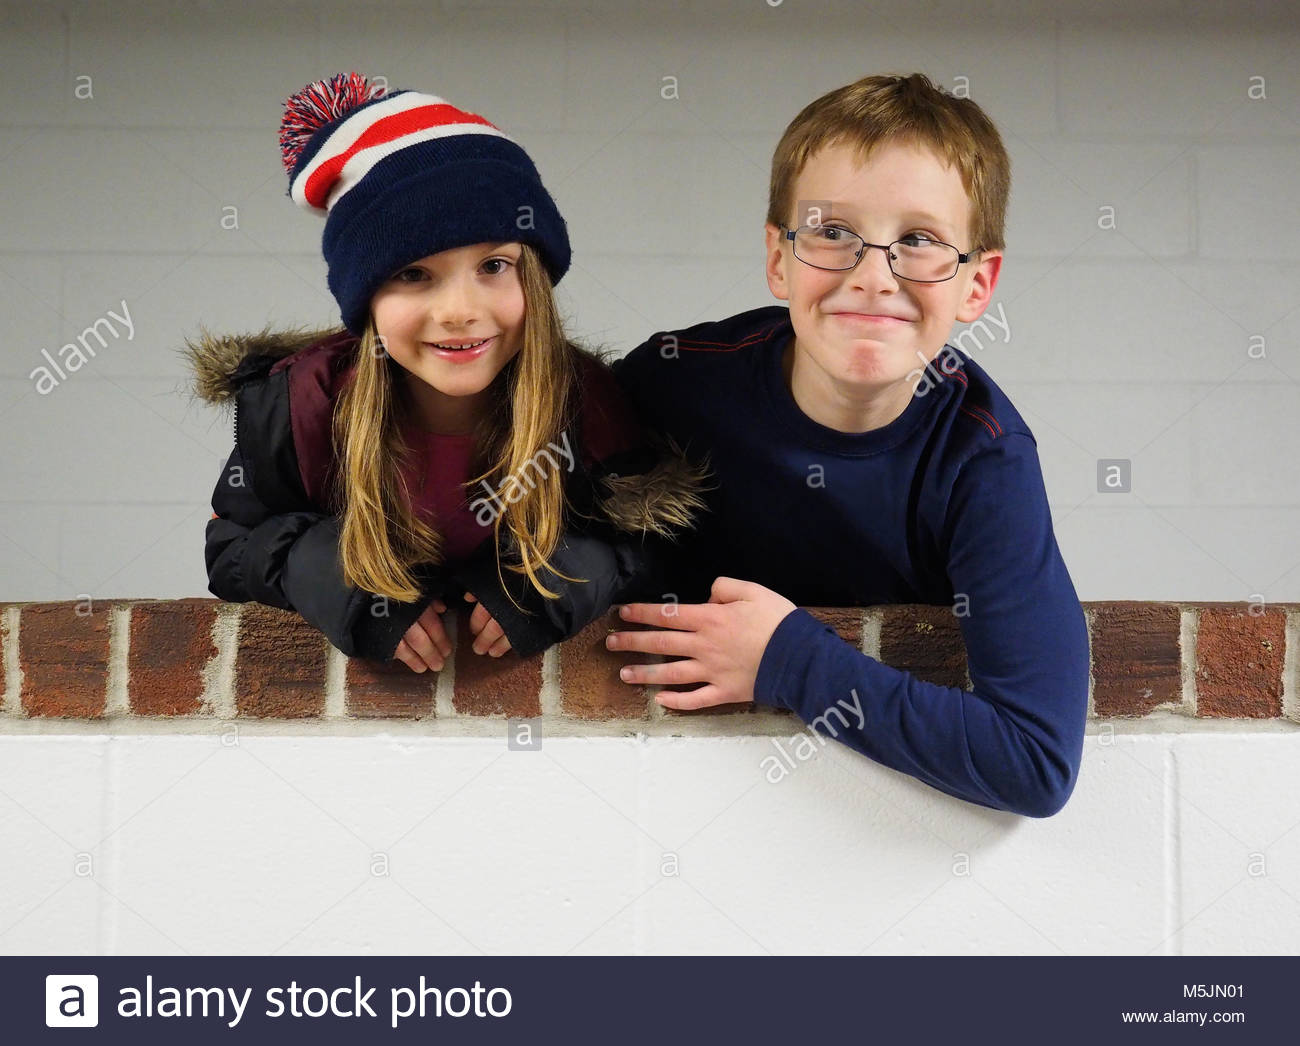 Young boy and girl making friends - Stock Image